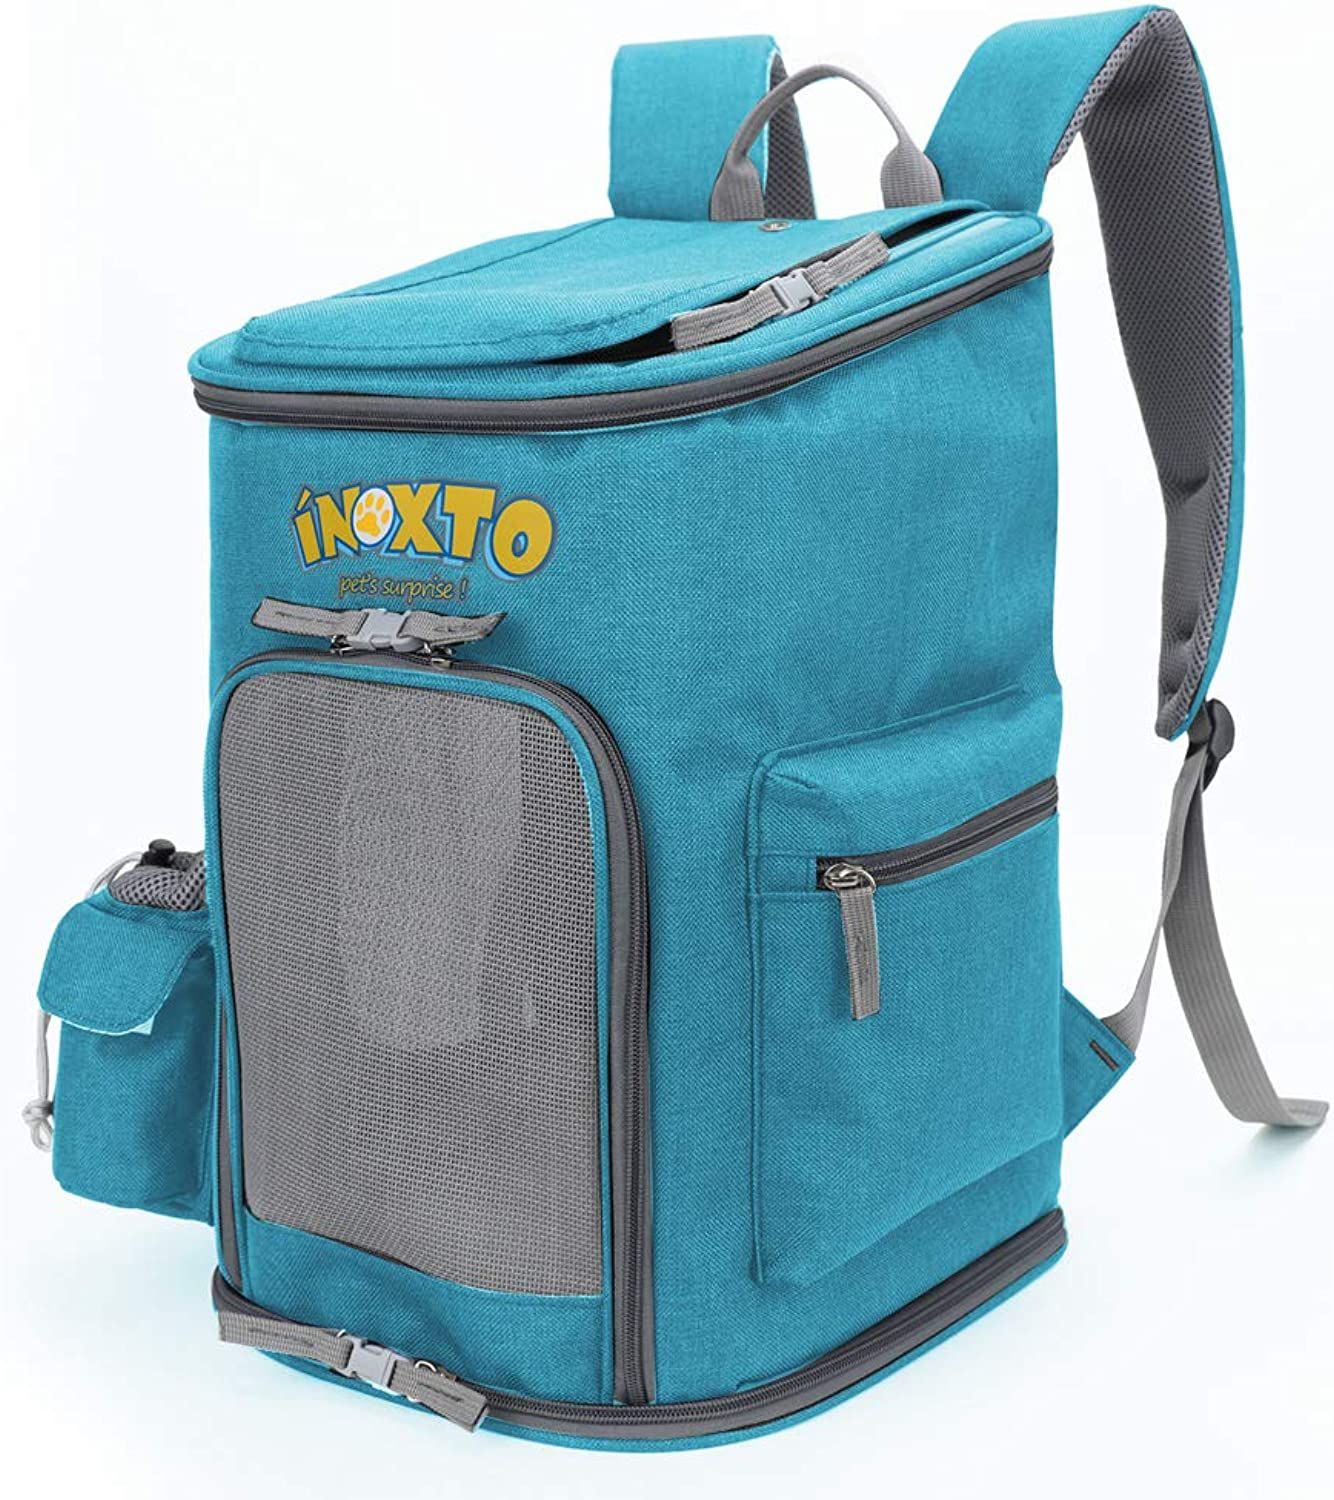 HUANGHIENG SoftSided Pet Carrier Backpack for Small Dogs and Cats Airlineved, Designed for Travel, Hiking, Walking &Outdoor (Blue)